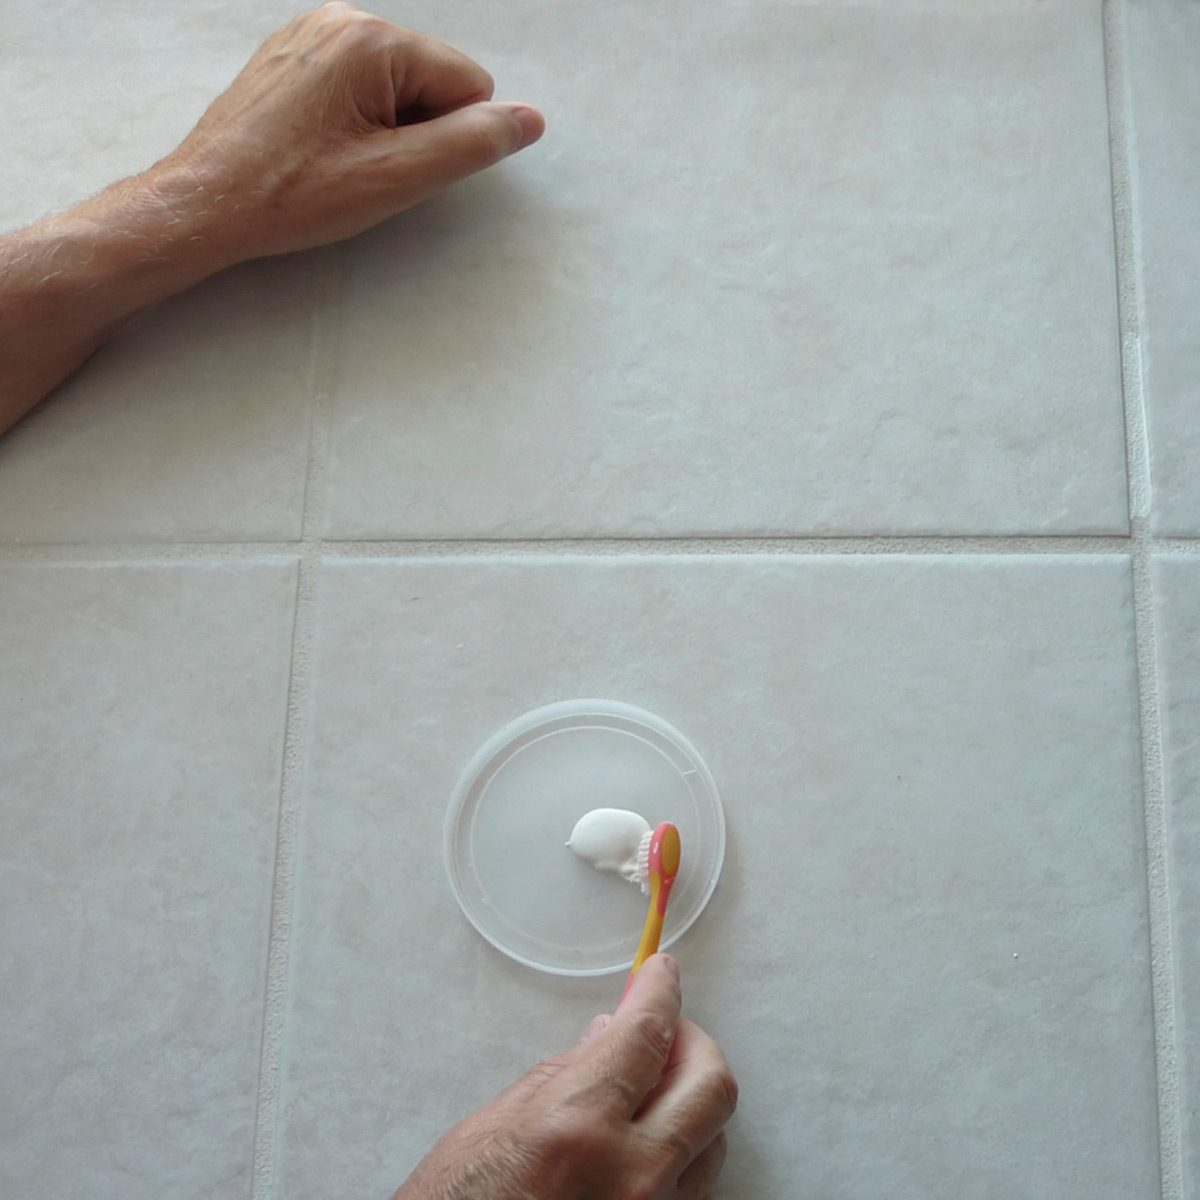 How to prevent bathroom mold the family handyman - How to get rid of surface mold in bathroom ...